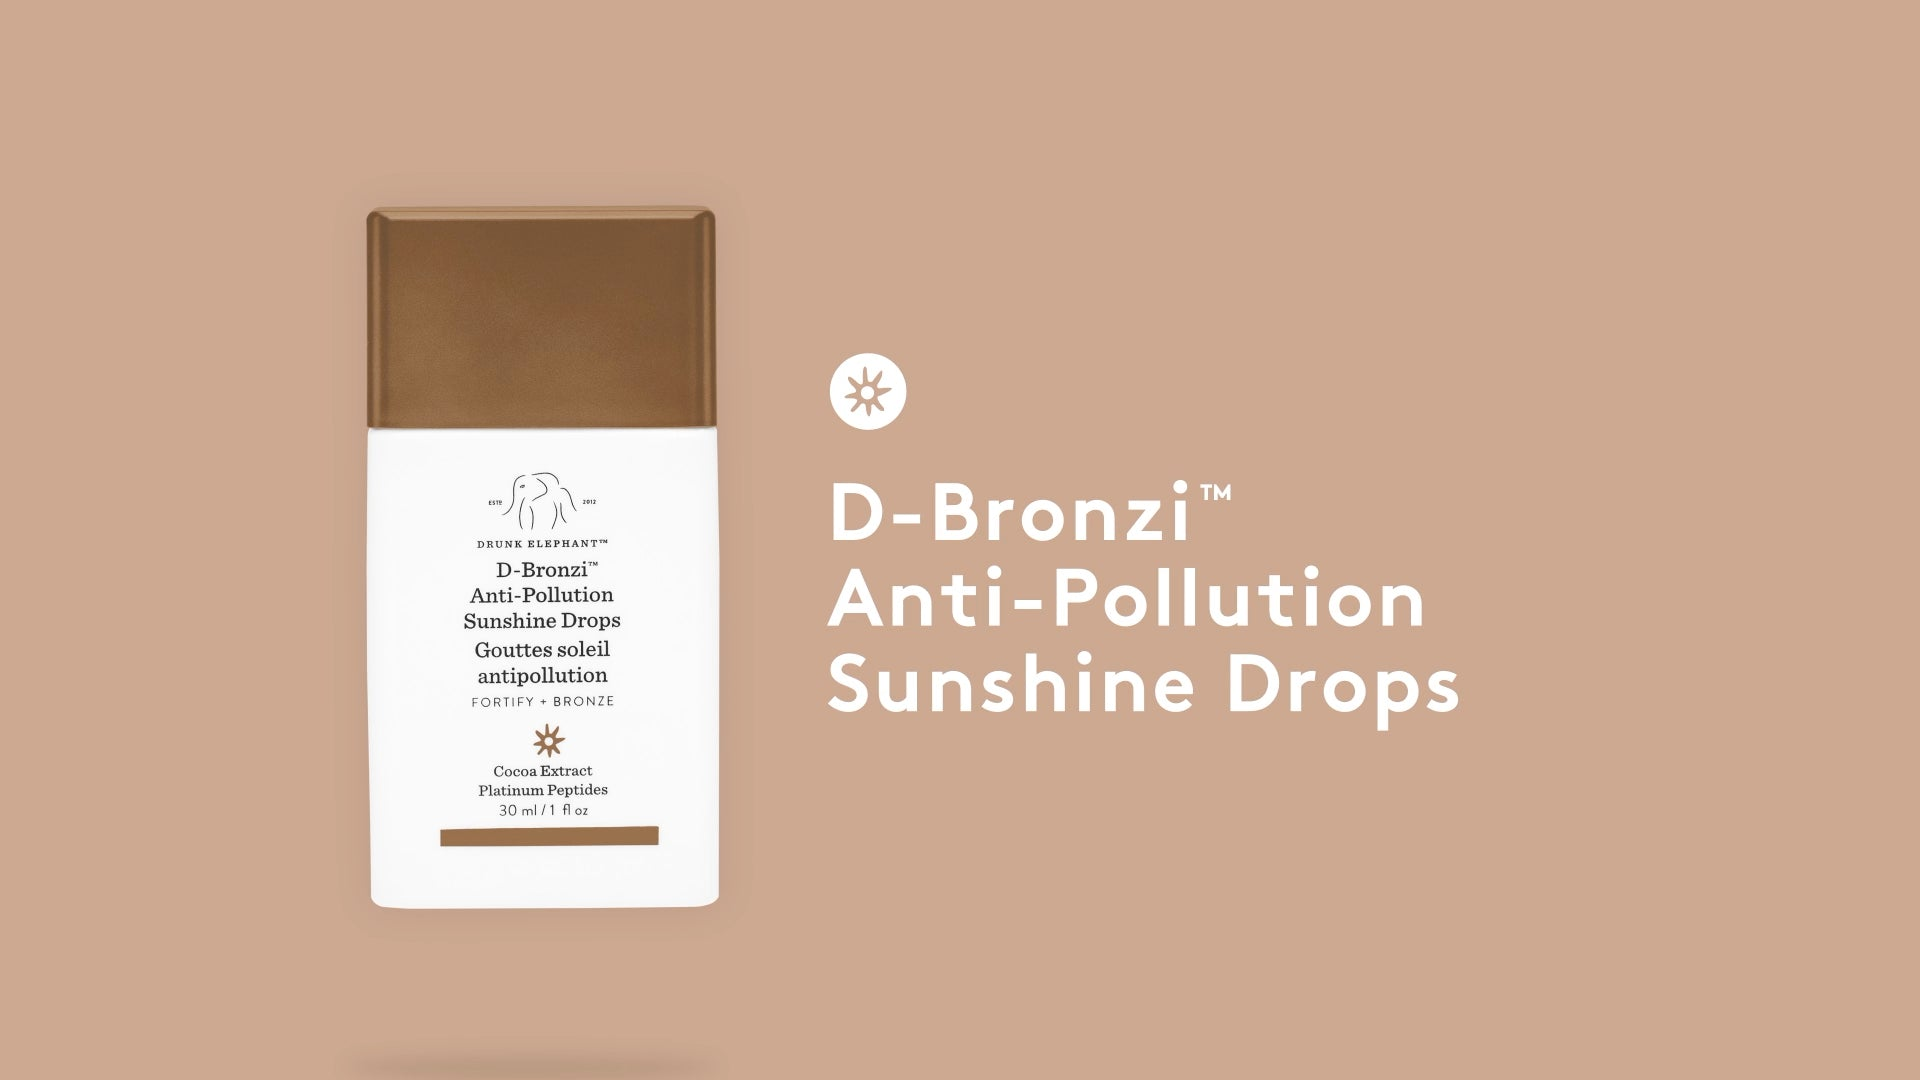 video detailing the benefits of D-Bronzi